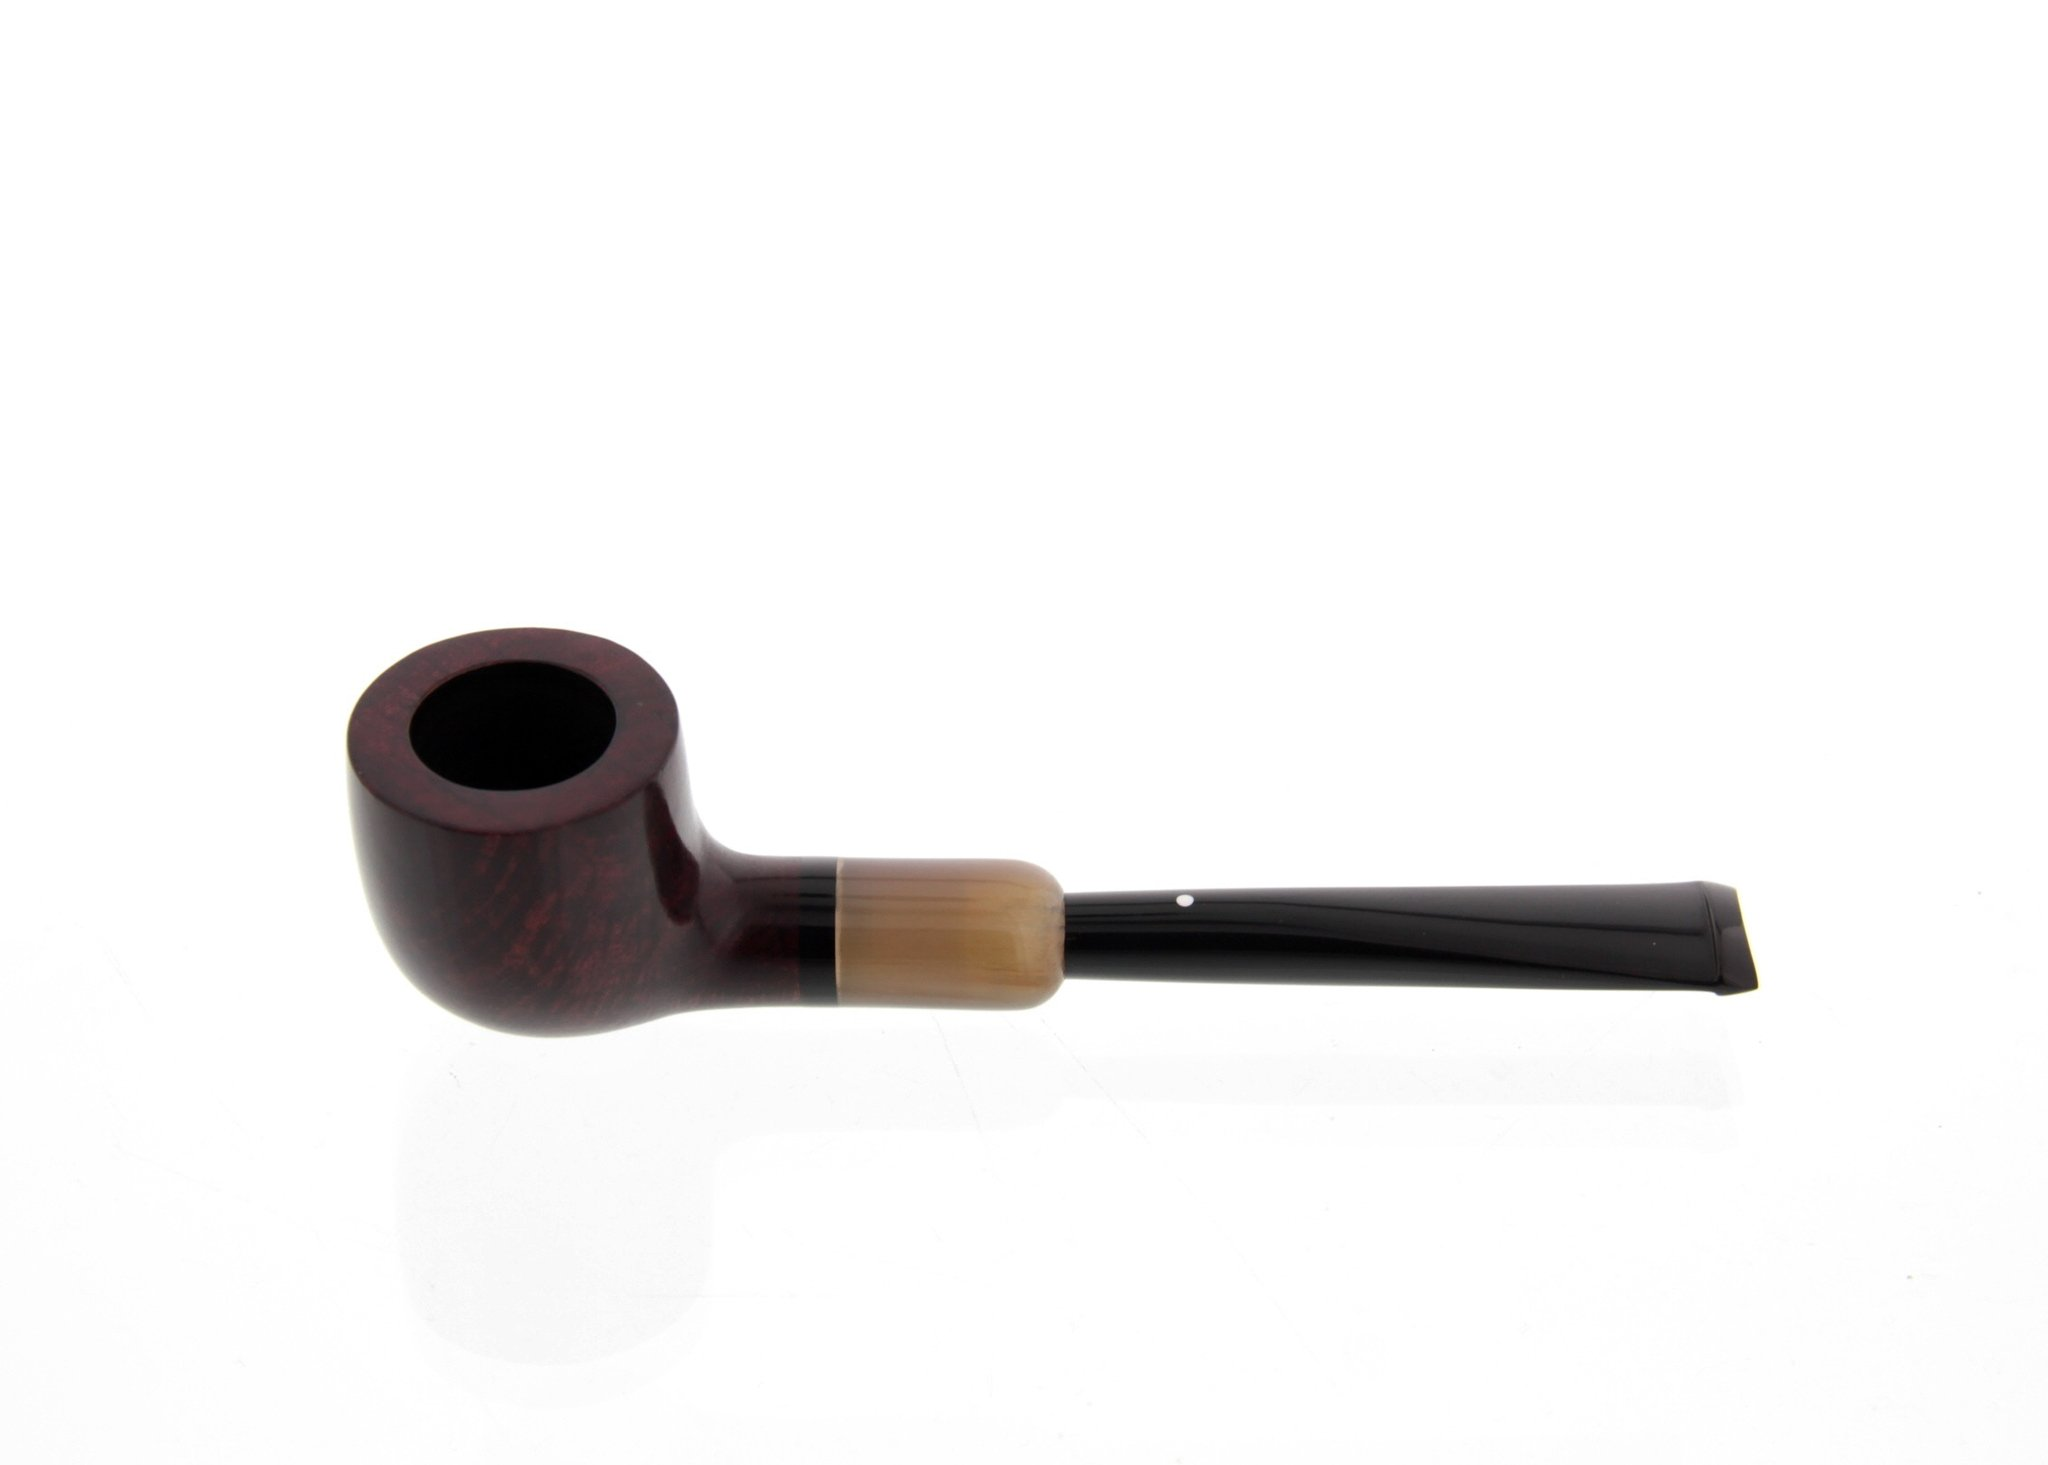 Dunhill The White Spot Bruyere No. 2106